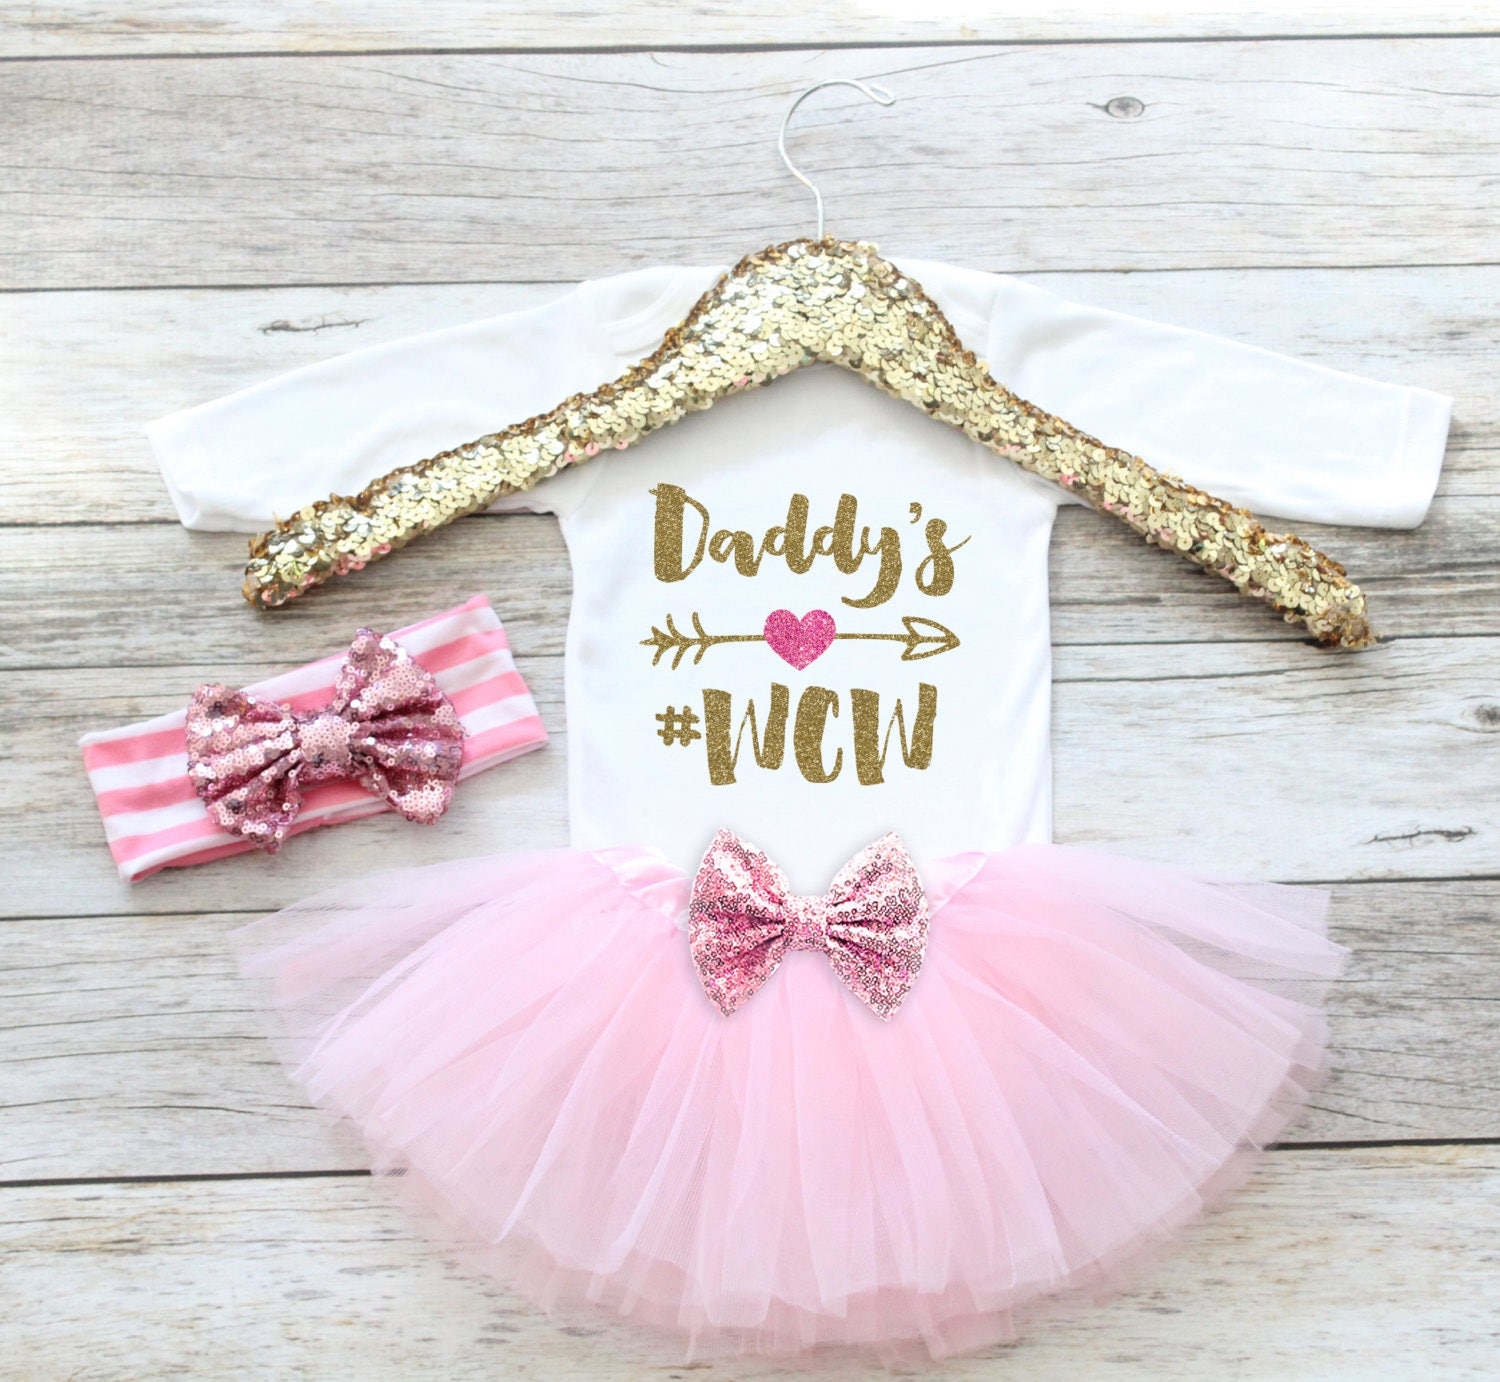 332b1e1b7 Daddy's #WCW, Newborn Coming Home Outfit, Hospital Outfit, Newborn Baby  Gift, Baby shower gift, set,Baby Girl , Daddy's girl